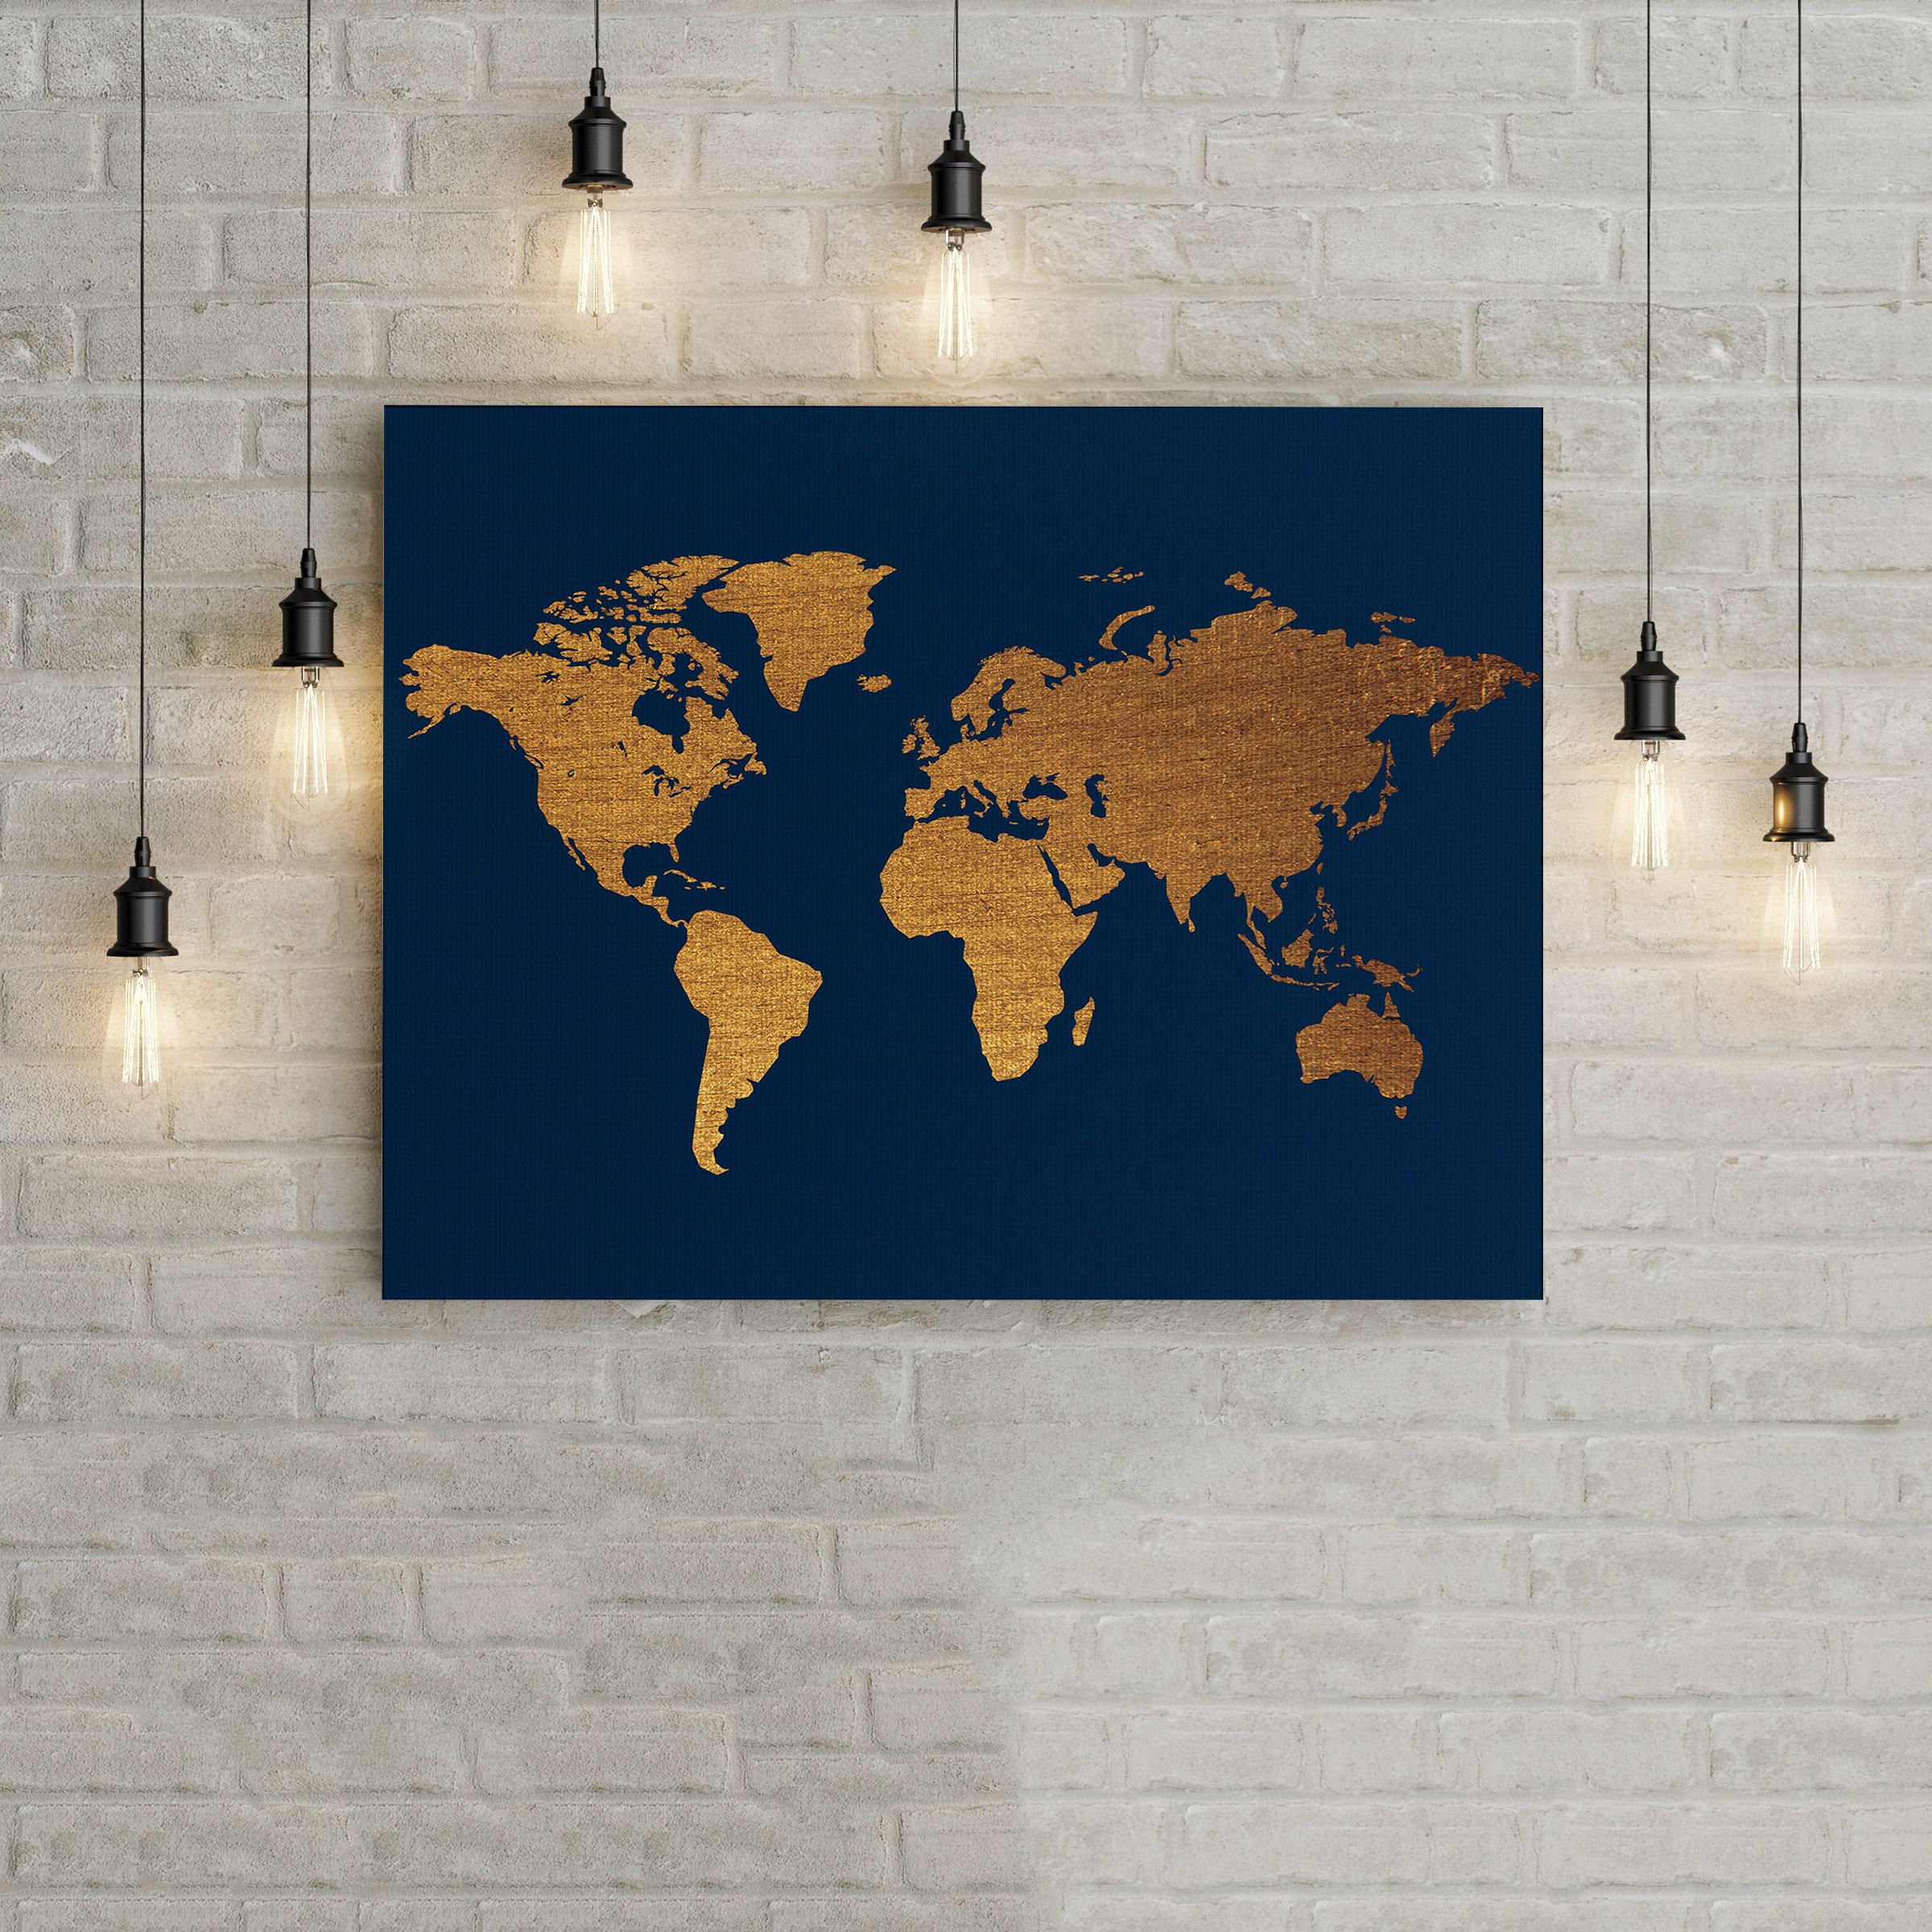 Printable gold world map gold home decor wall art office decor printable gold world map gold home decor wall art office decor office wall art modern digital download contemporary wall art printable gumiabroncs Image collections